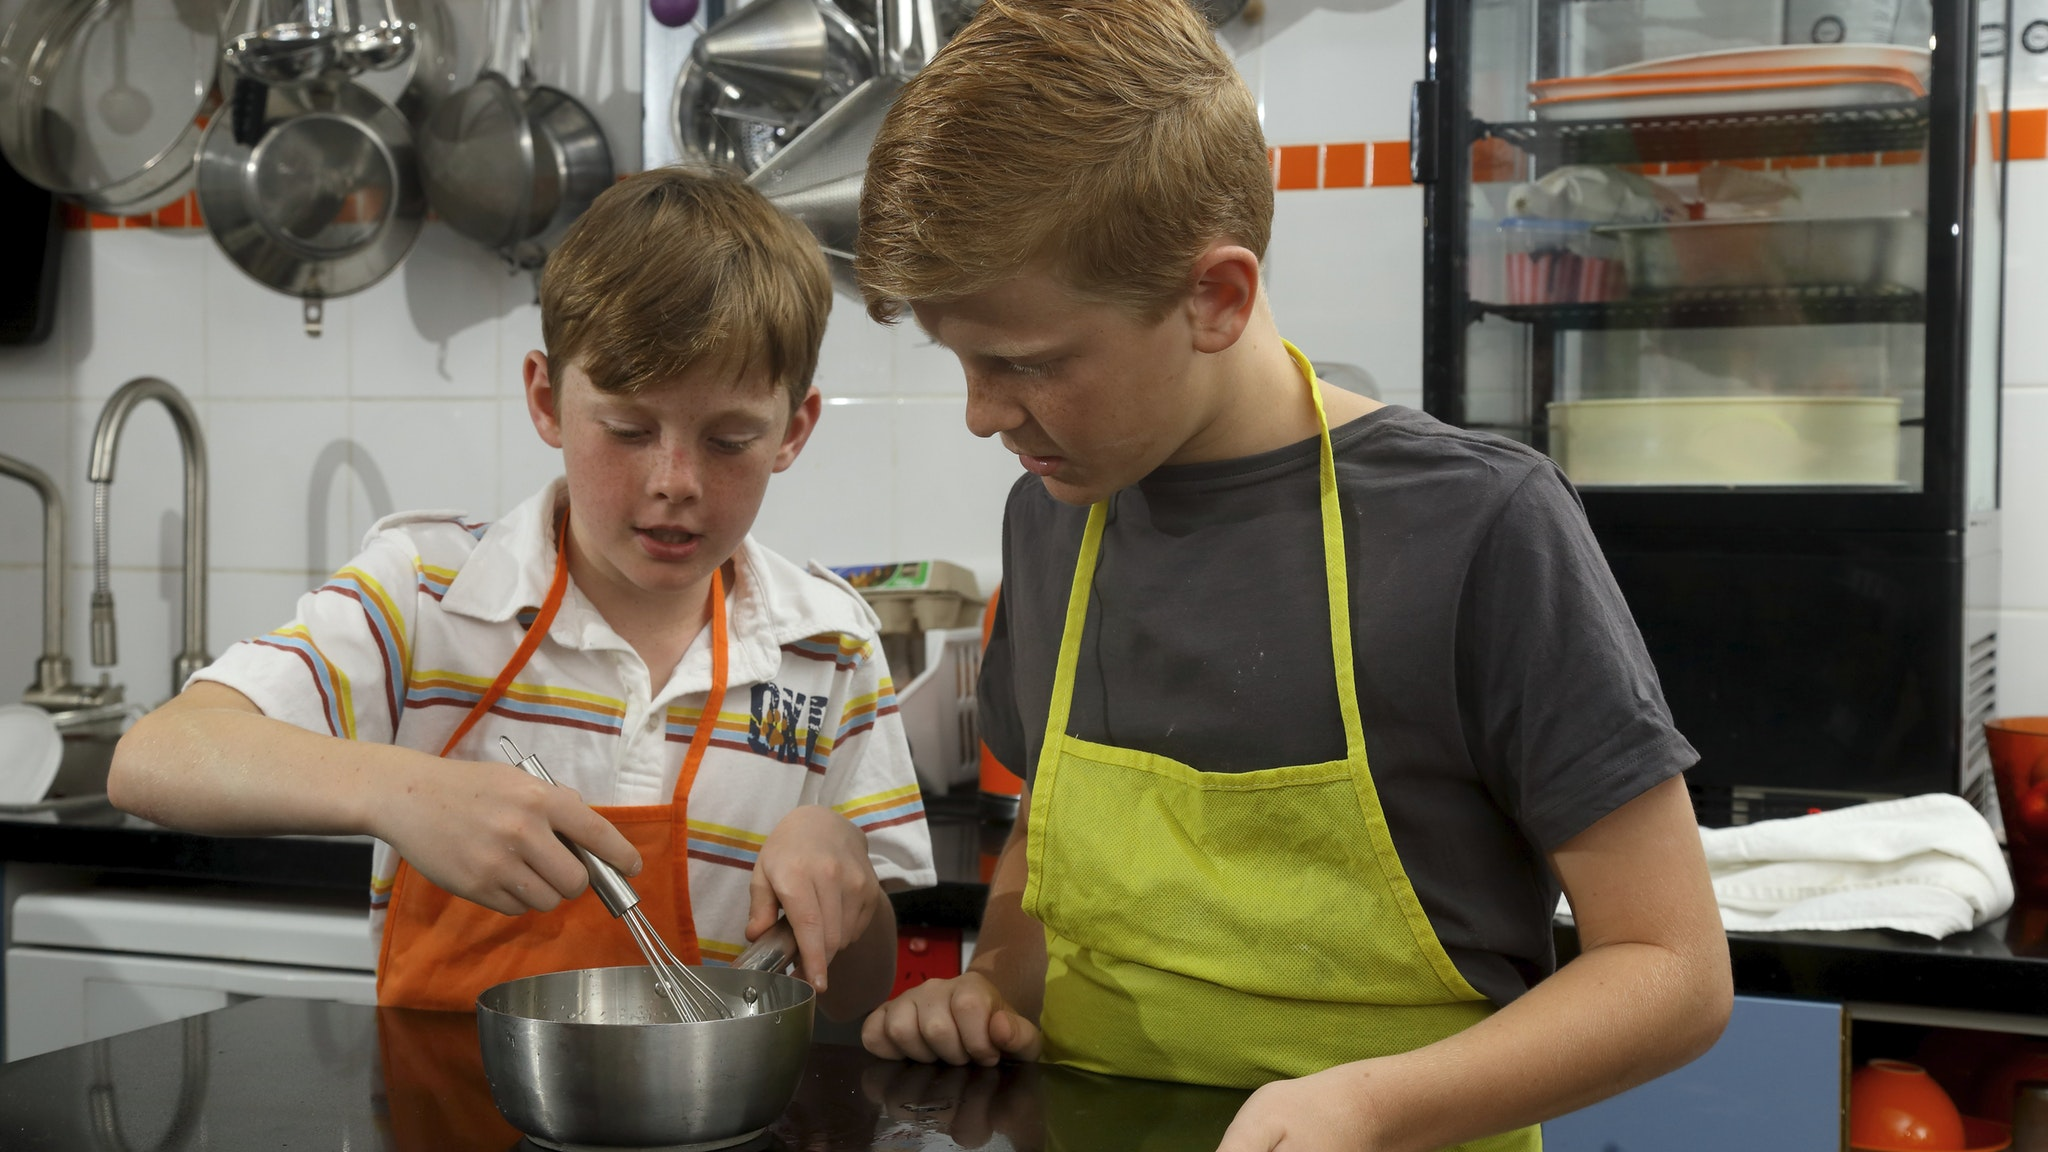 Kids in the Kitchen Cooking